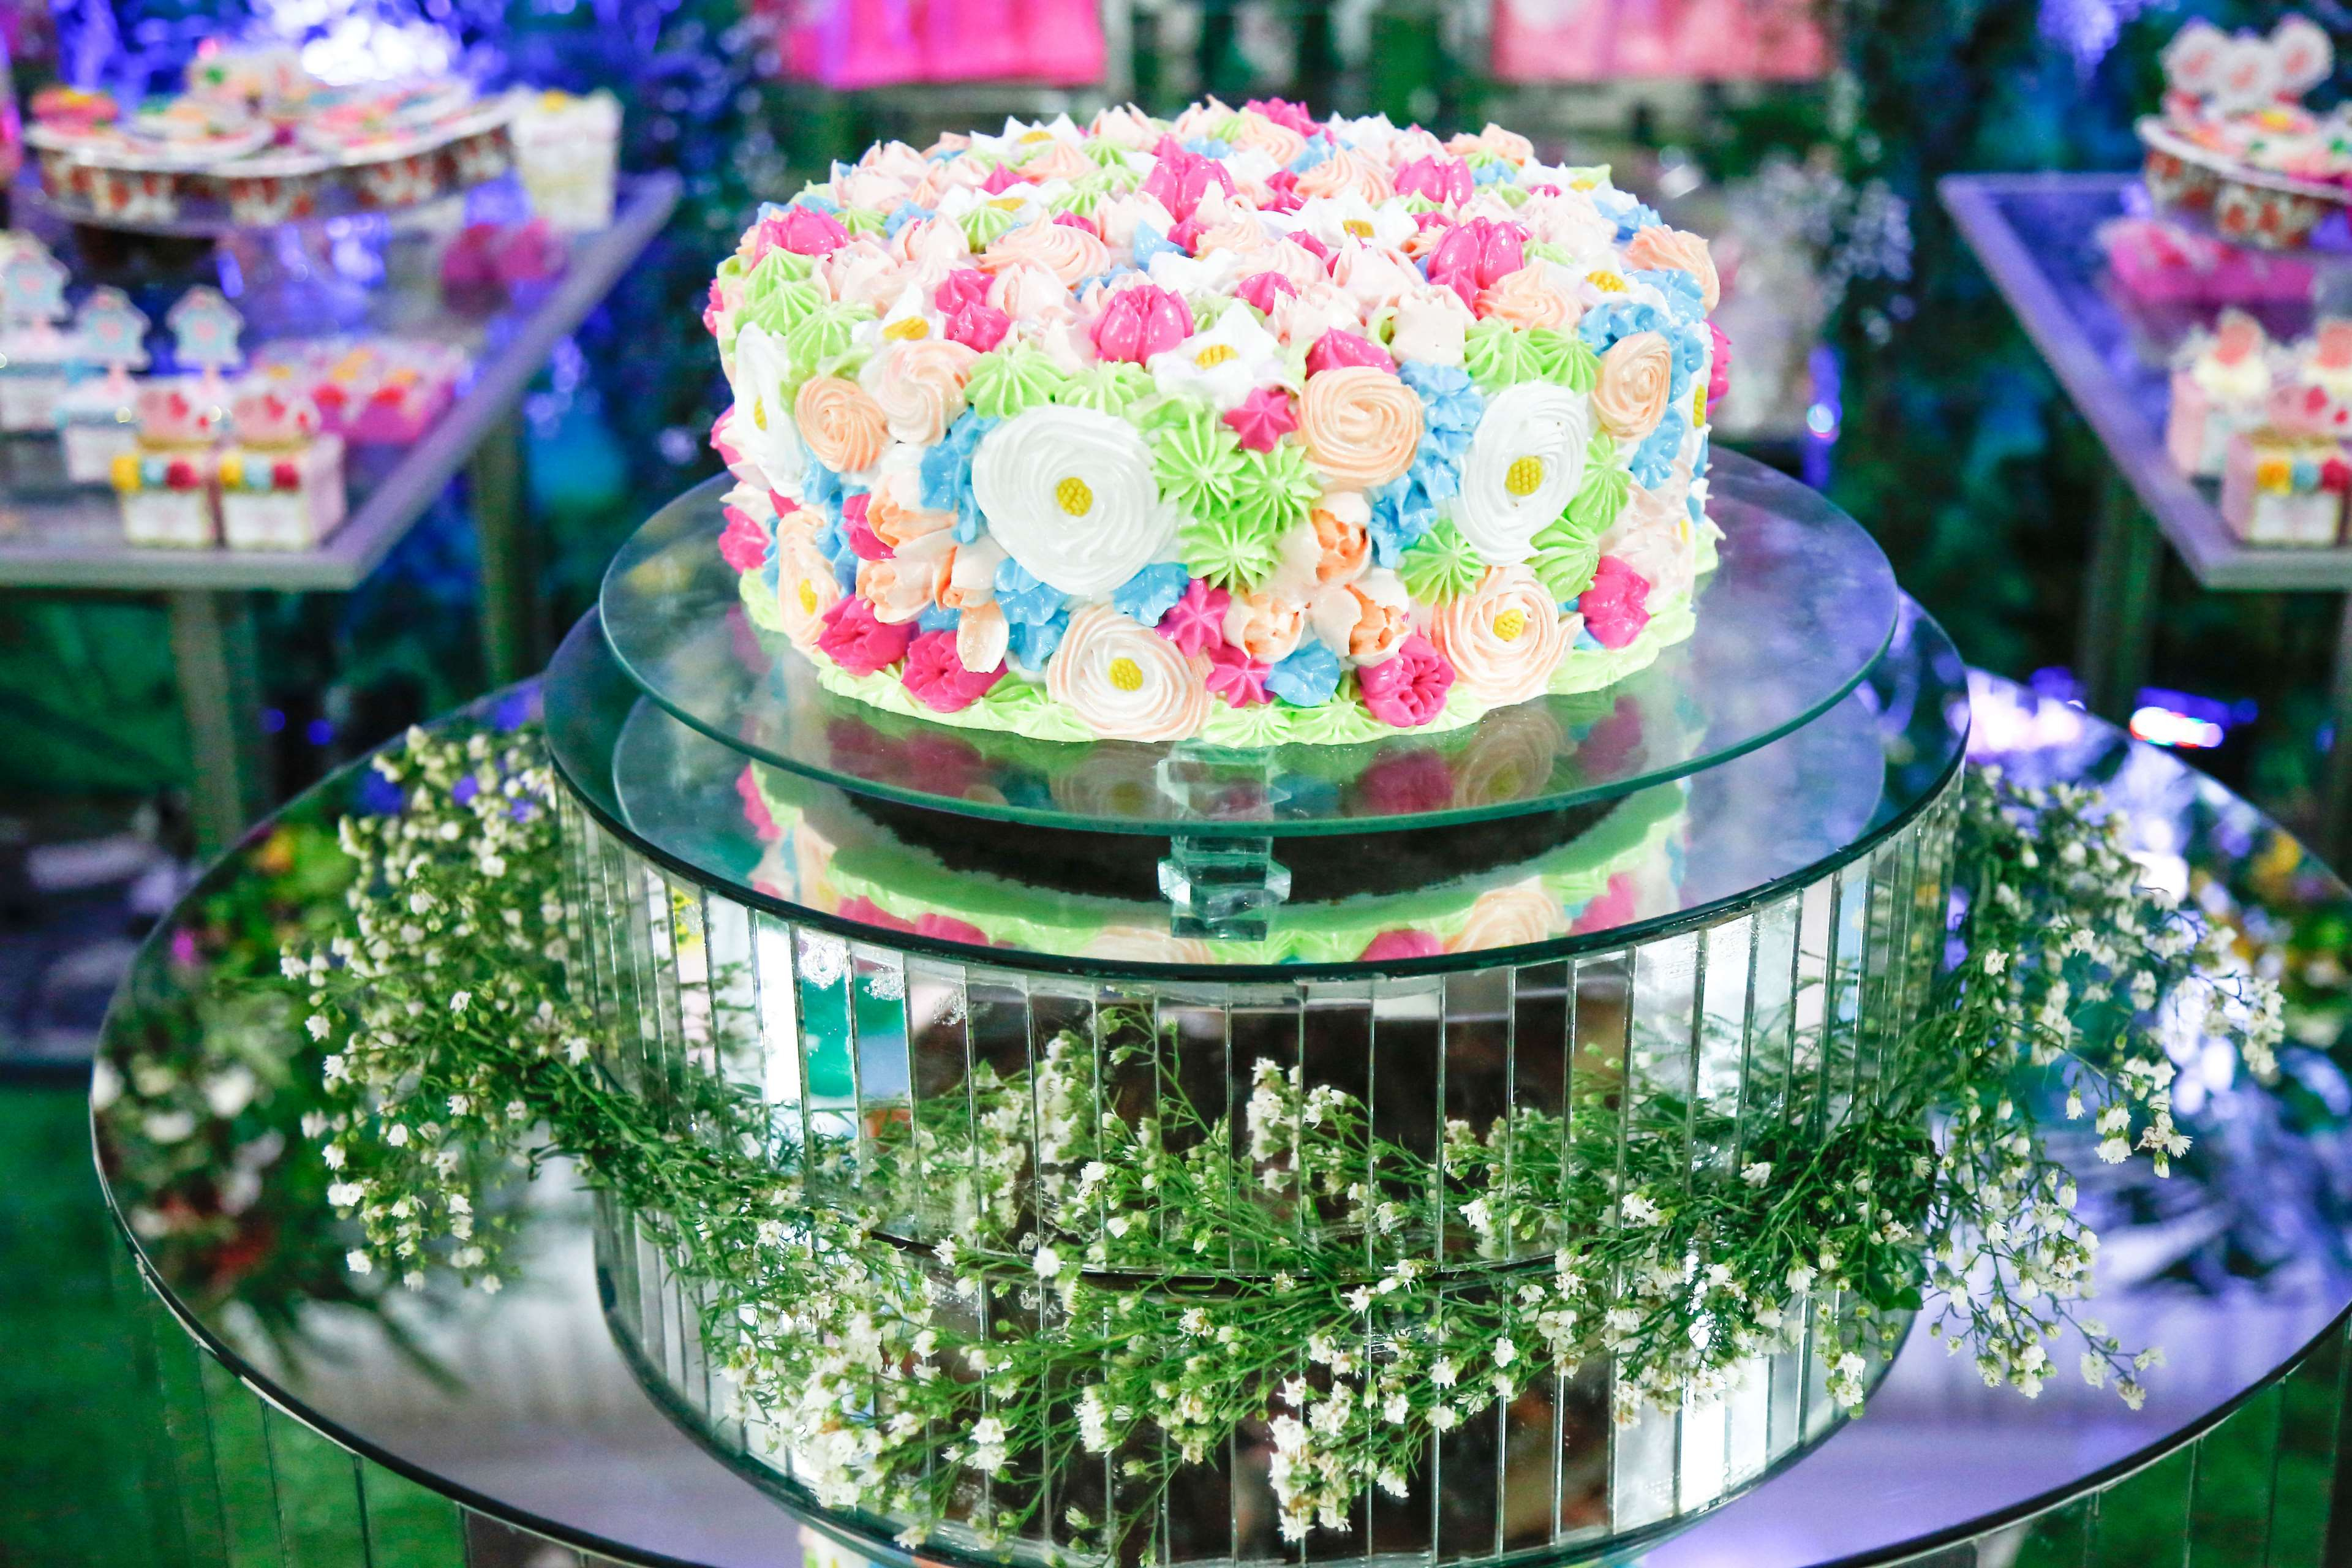 Birthday Flower Cake Birthday Cake Flower Cake Happy Birthday 4k Wallpaper And Background